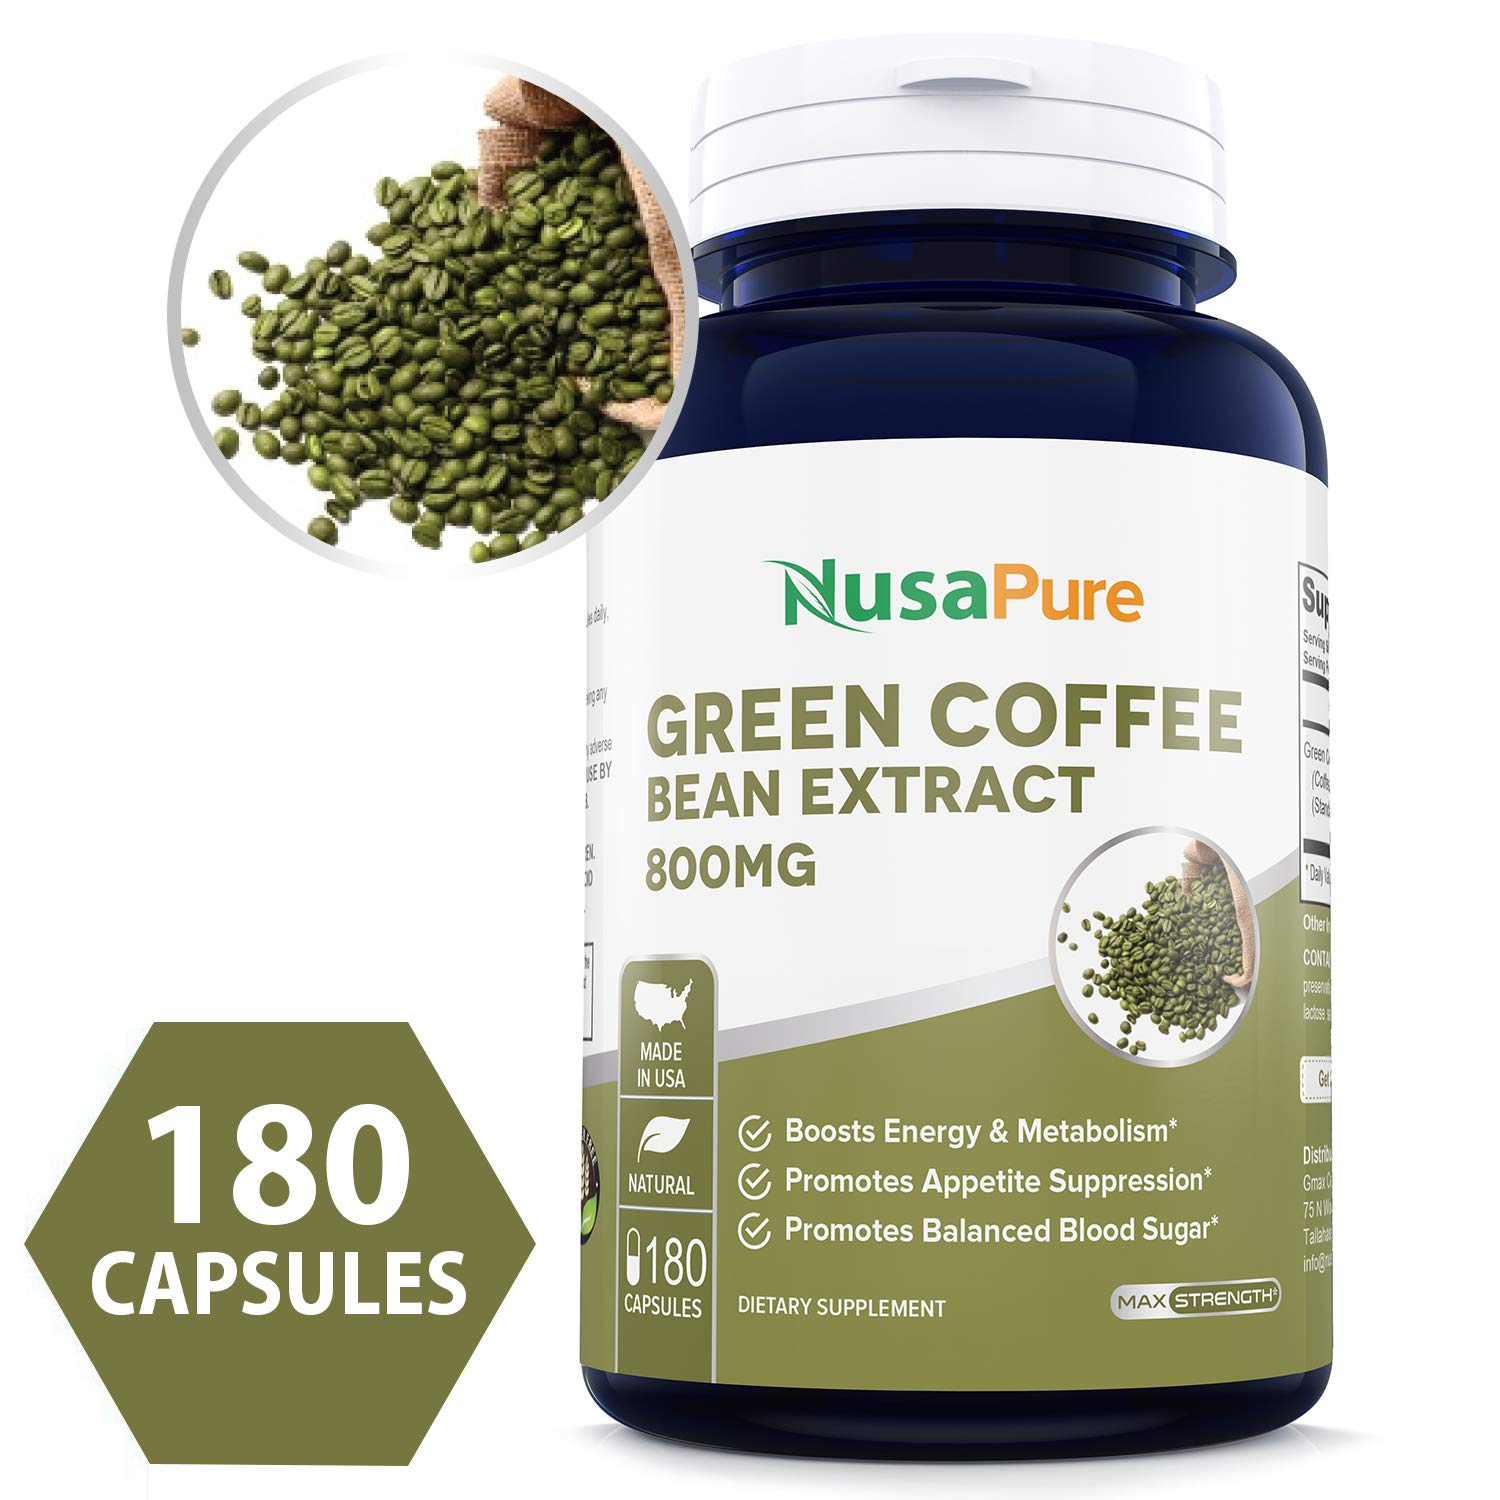 Green Coffee Bean Extract 800mg 180caps (Non-GMO, Gluten Free & 50% Chlorogenic Acid) Max Strength Natural GCA Antioxidant Cleanse for Weight Loss by NusaPure